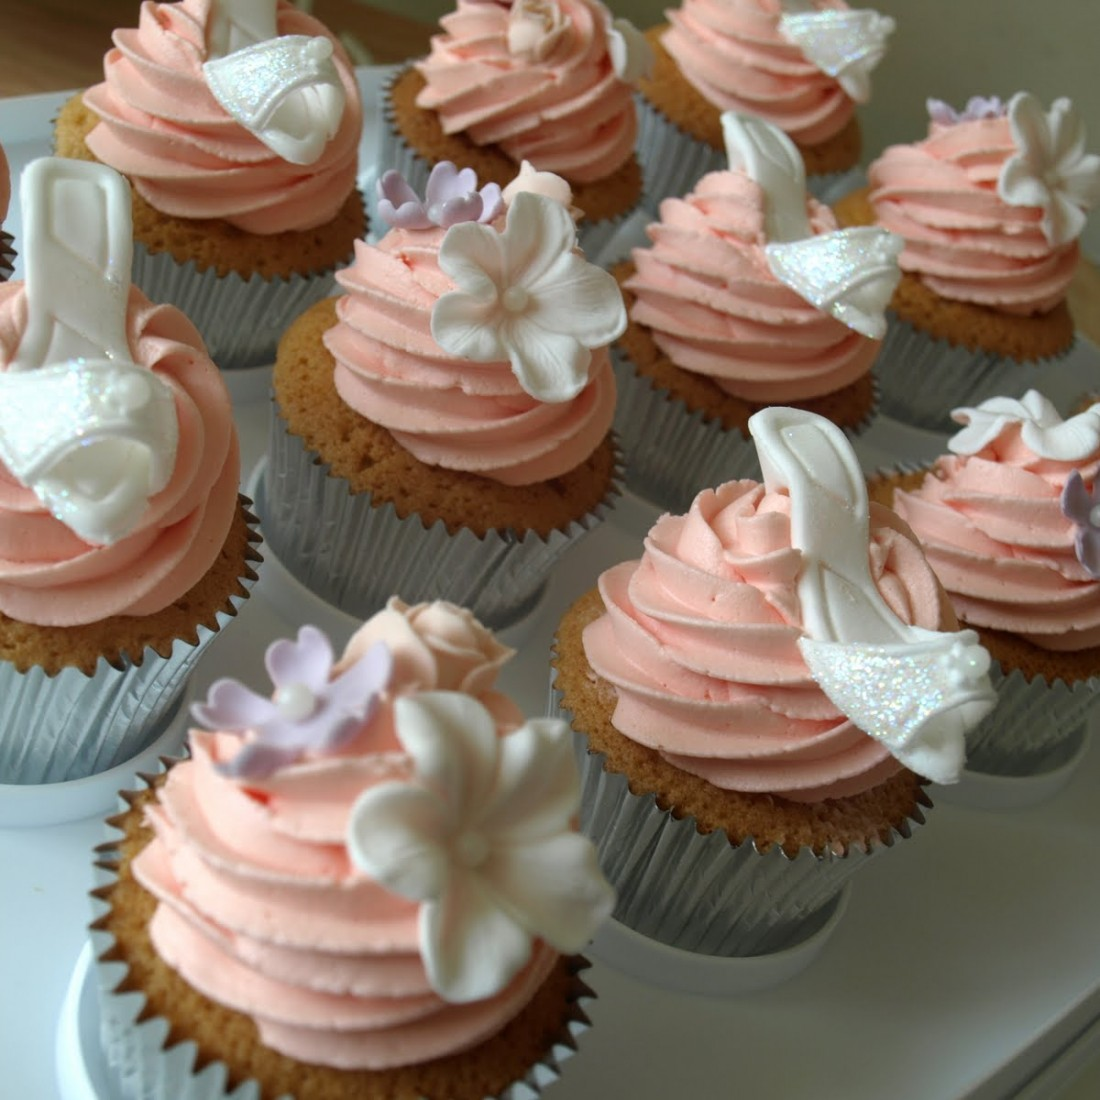 high-heel-shoes-white-cupcake-recipe-by-cupcakepedia-1100x1100